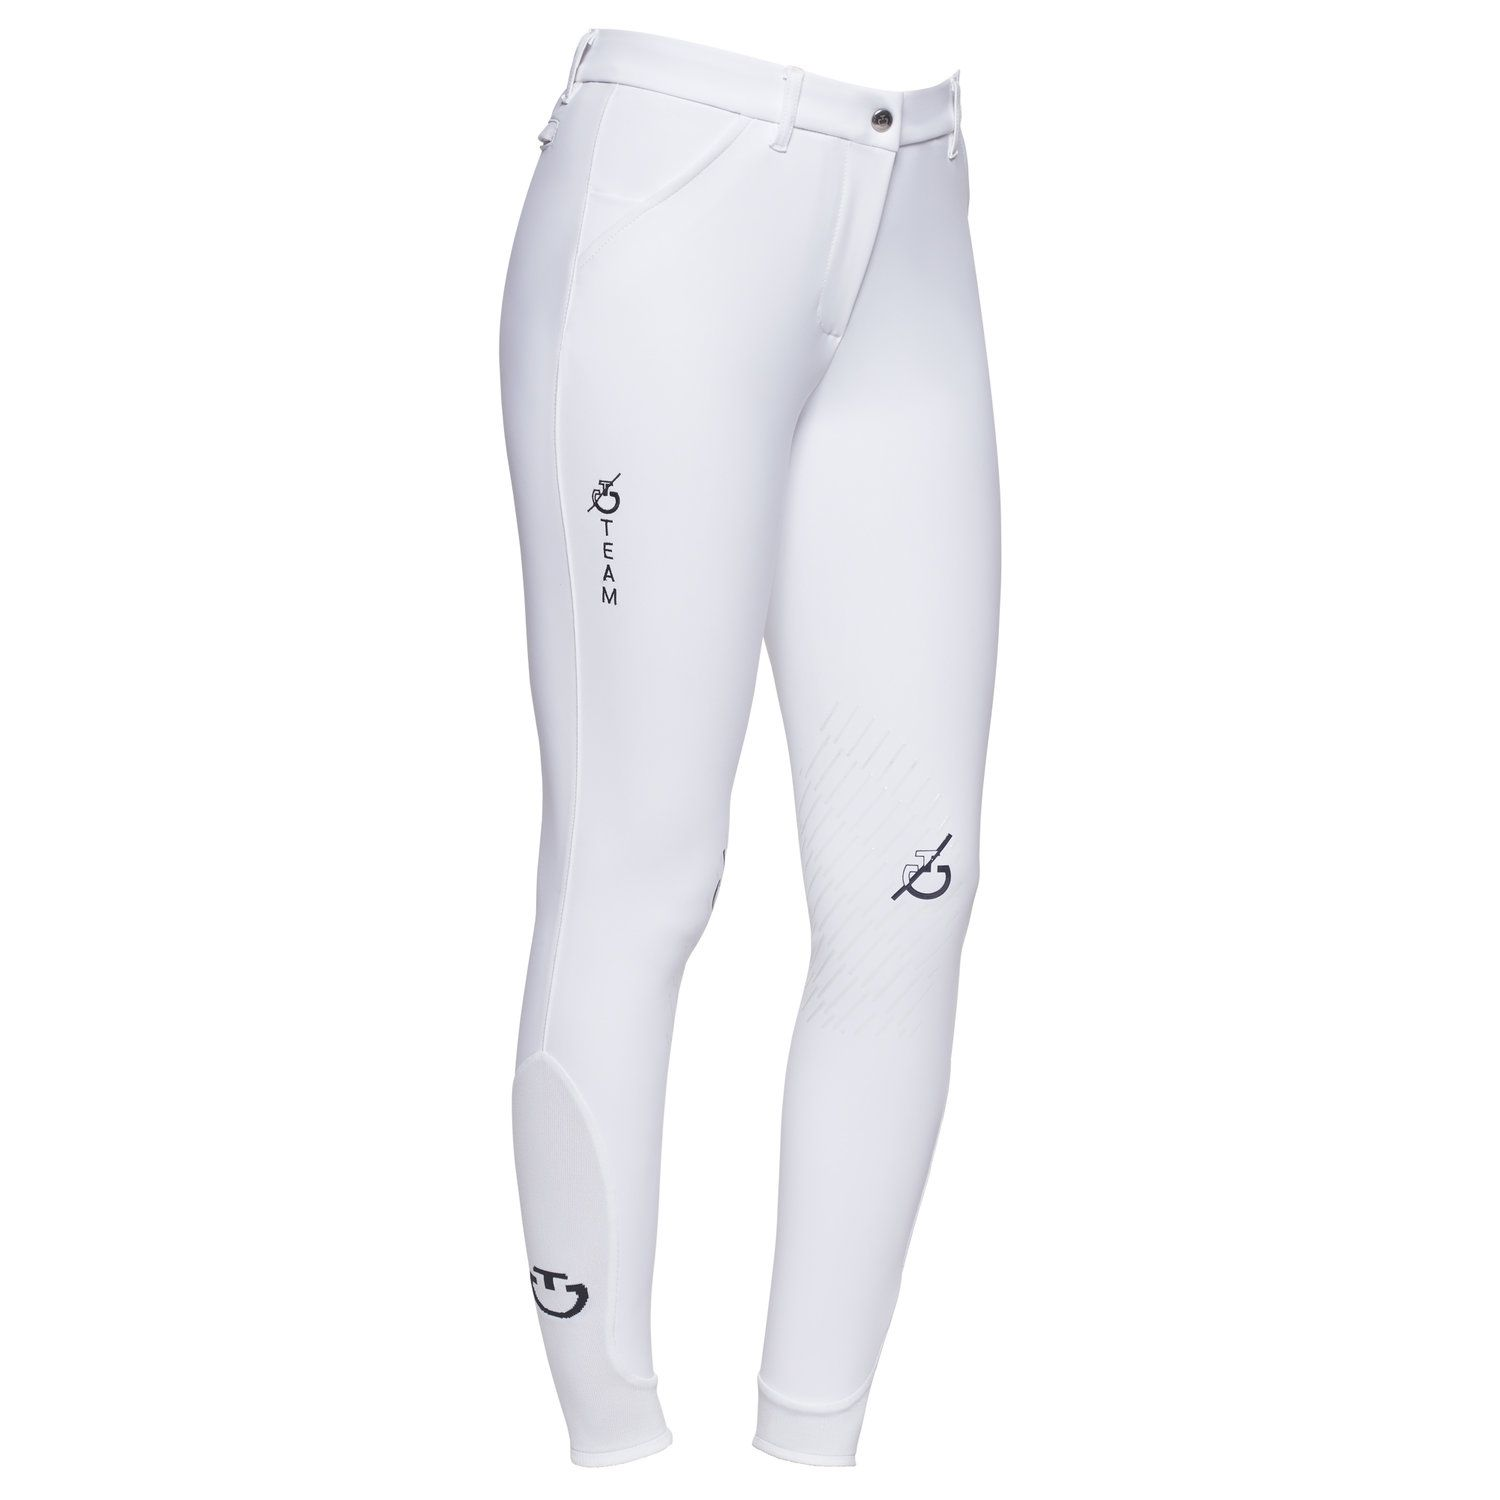 Women's CT Team knee grip breeches